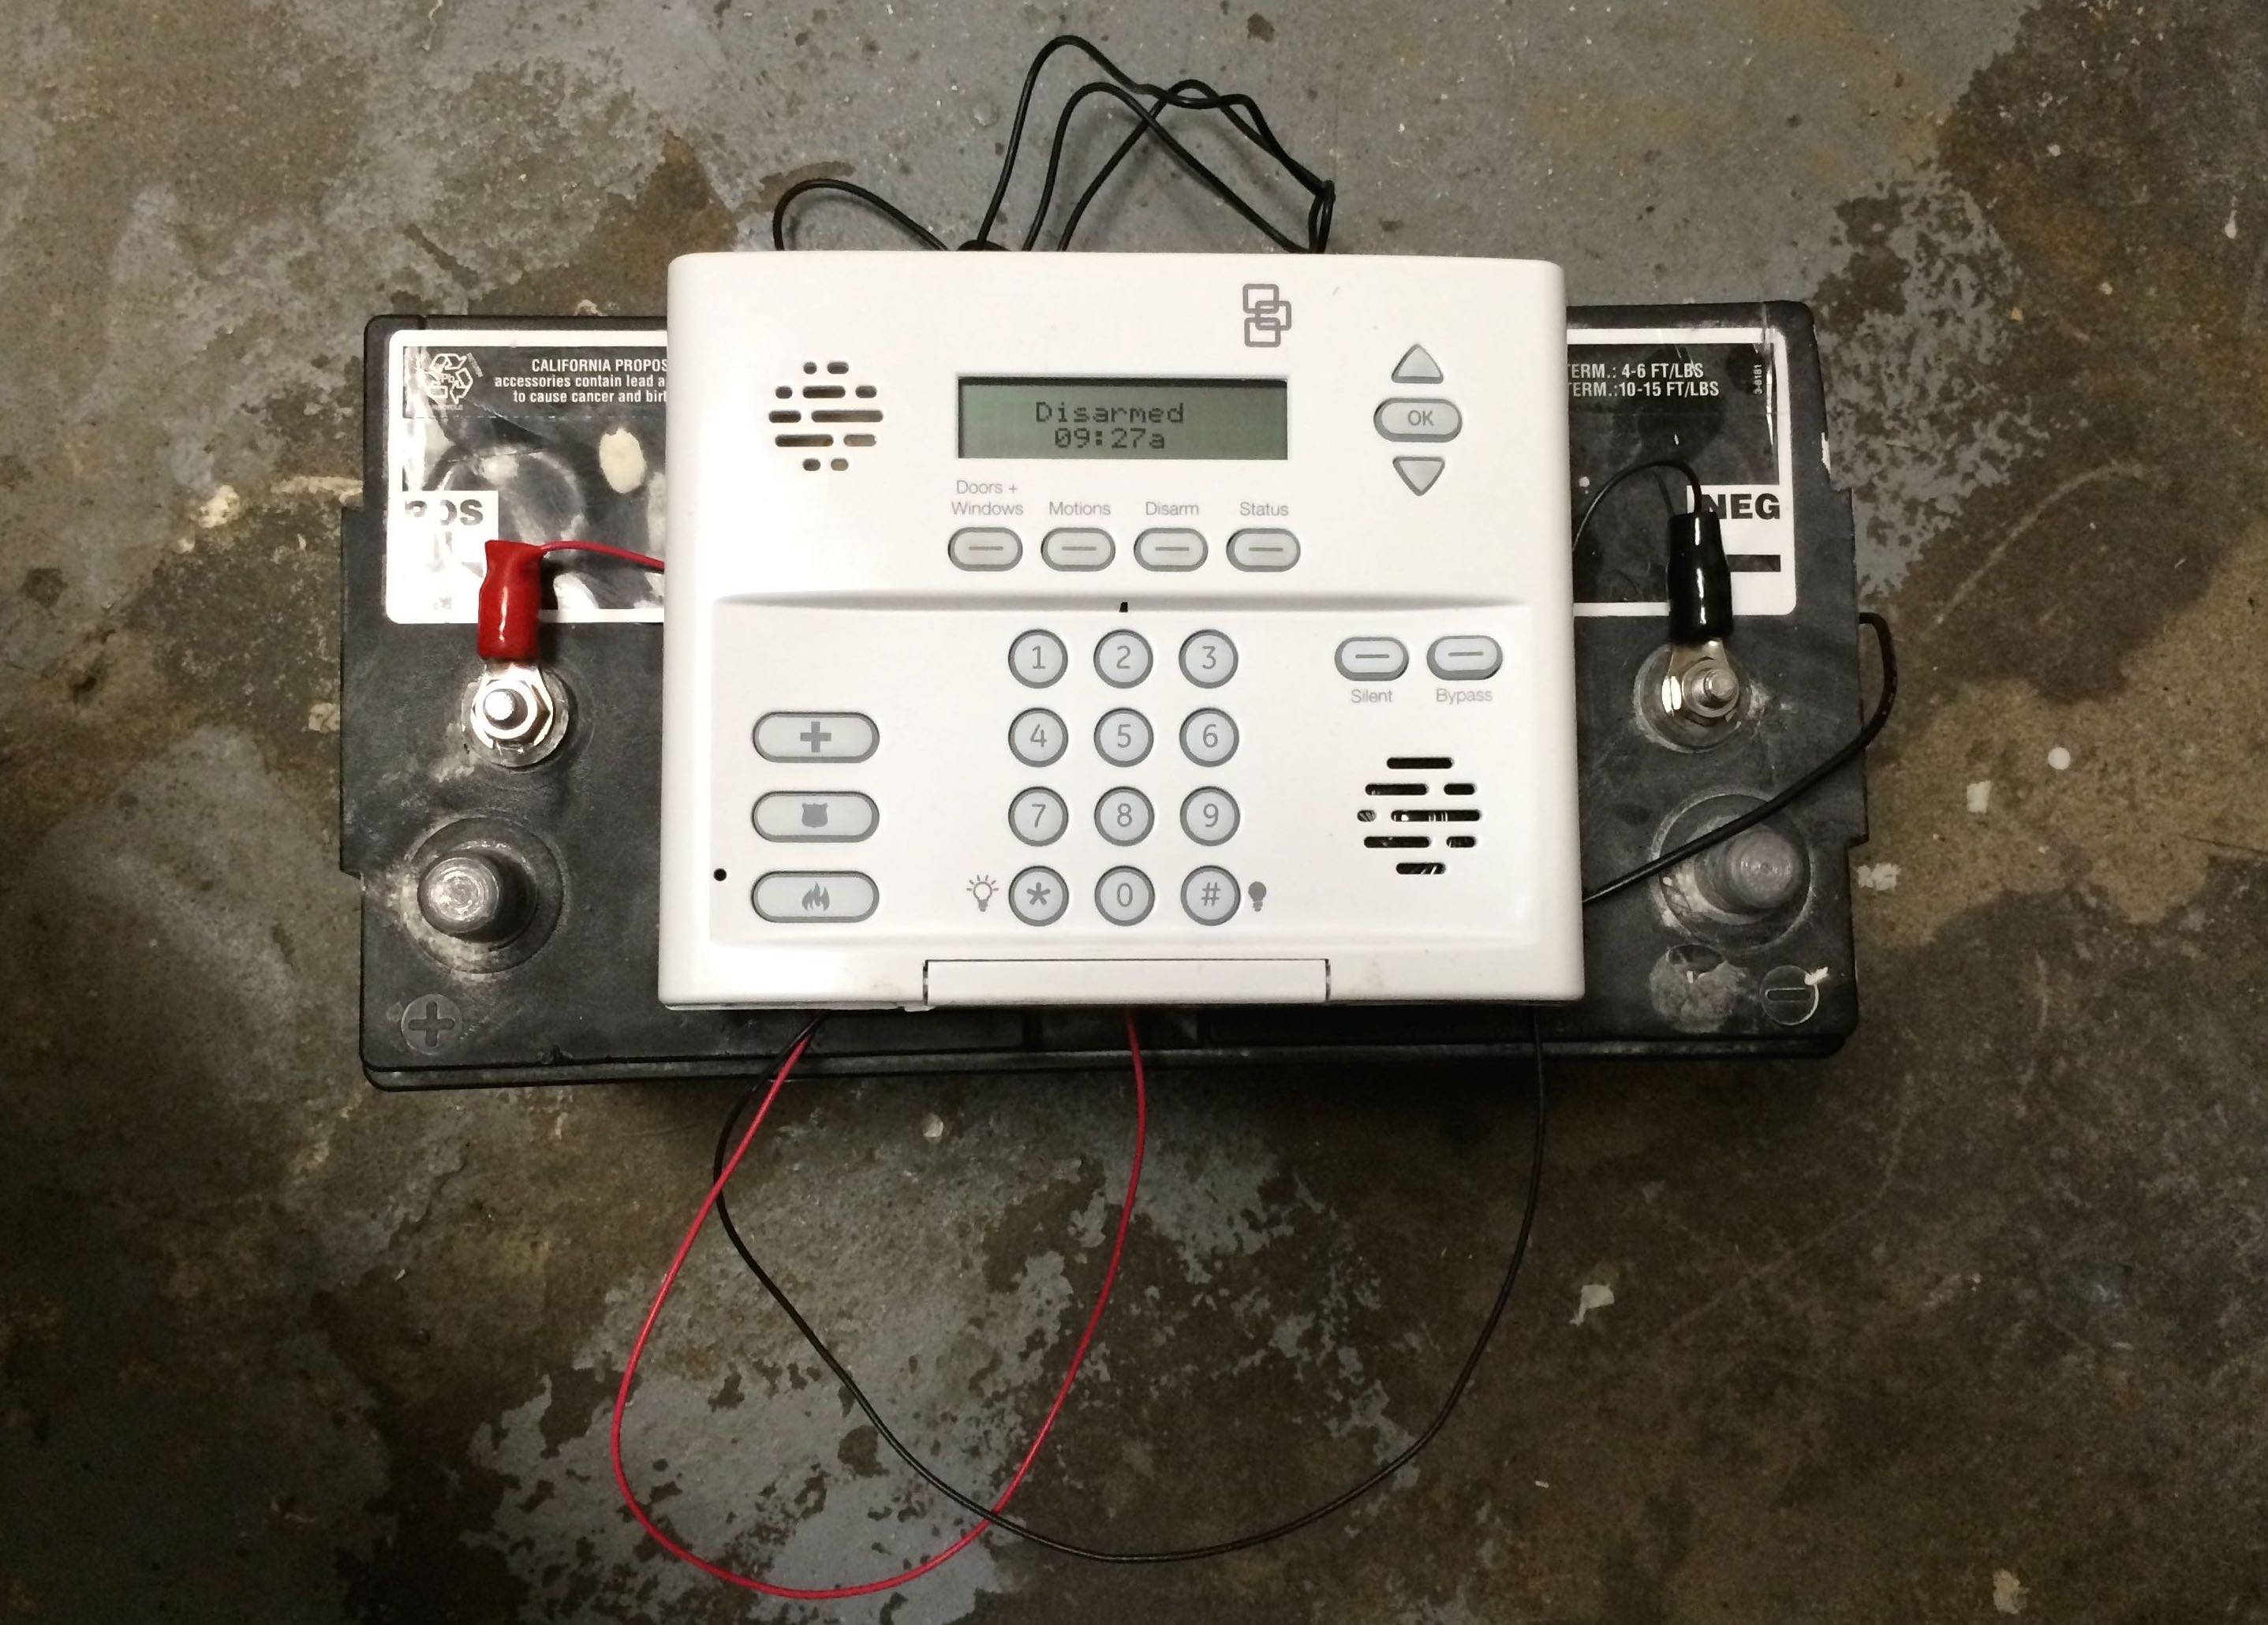 Power Simon Xt Alarm With Battery Share Your Repair